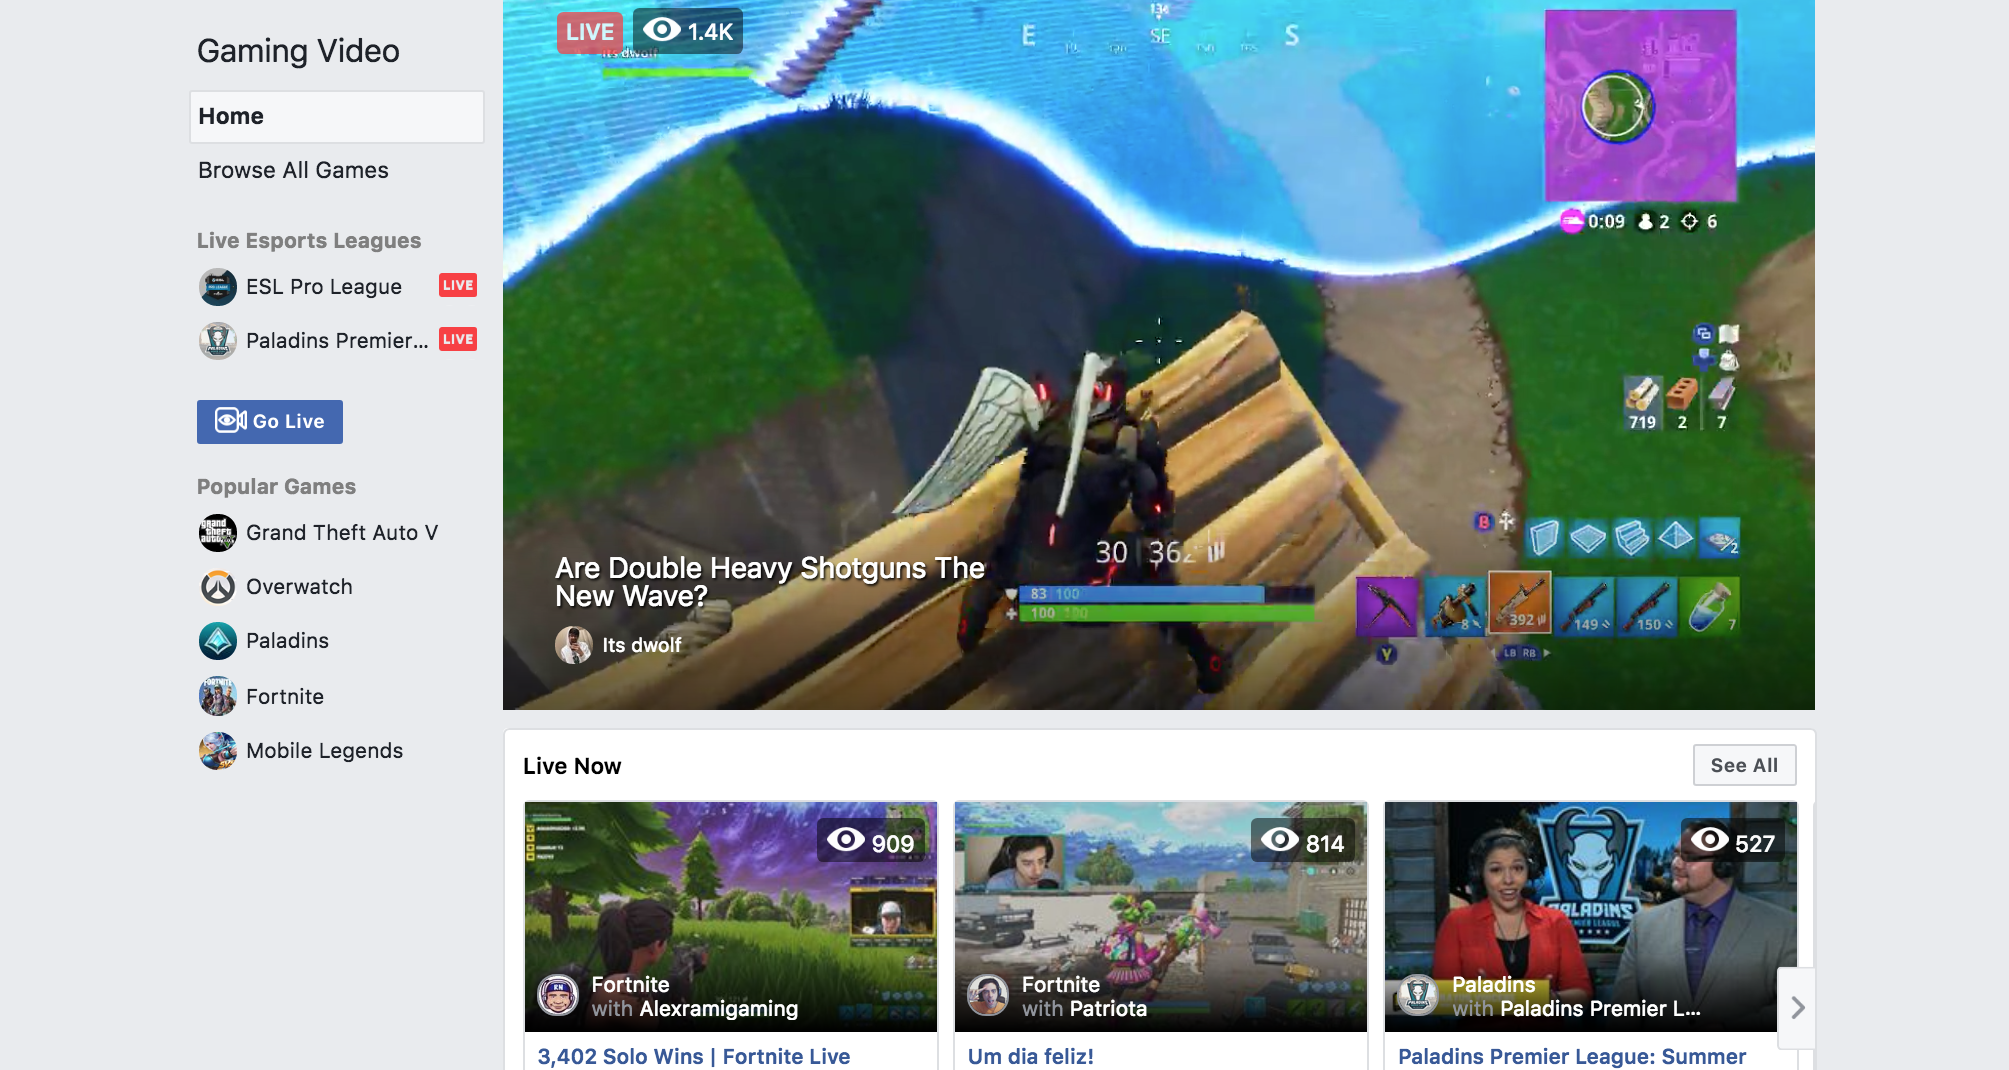 Facebook aims to attract Fortnite generation with video game streaming service